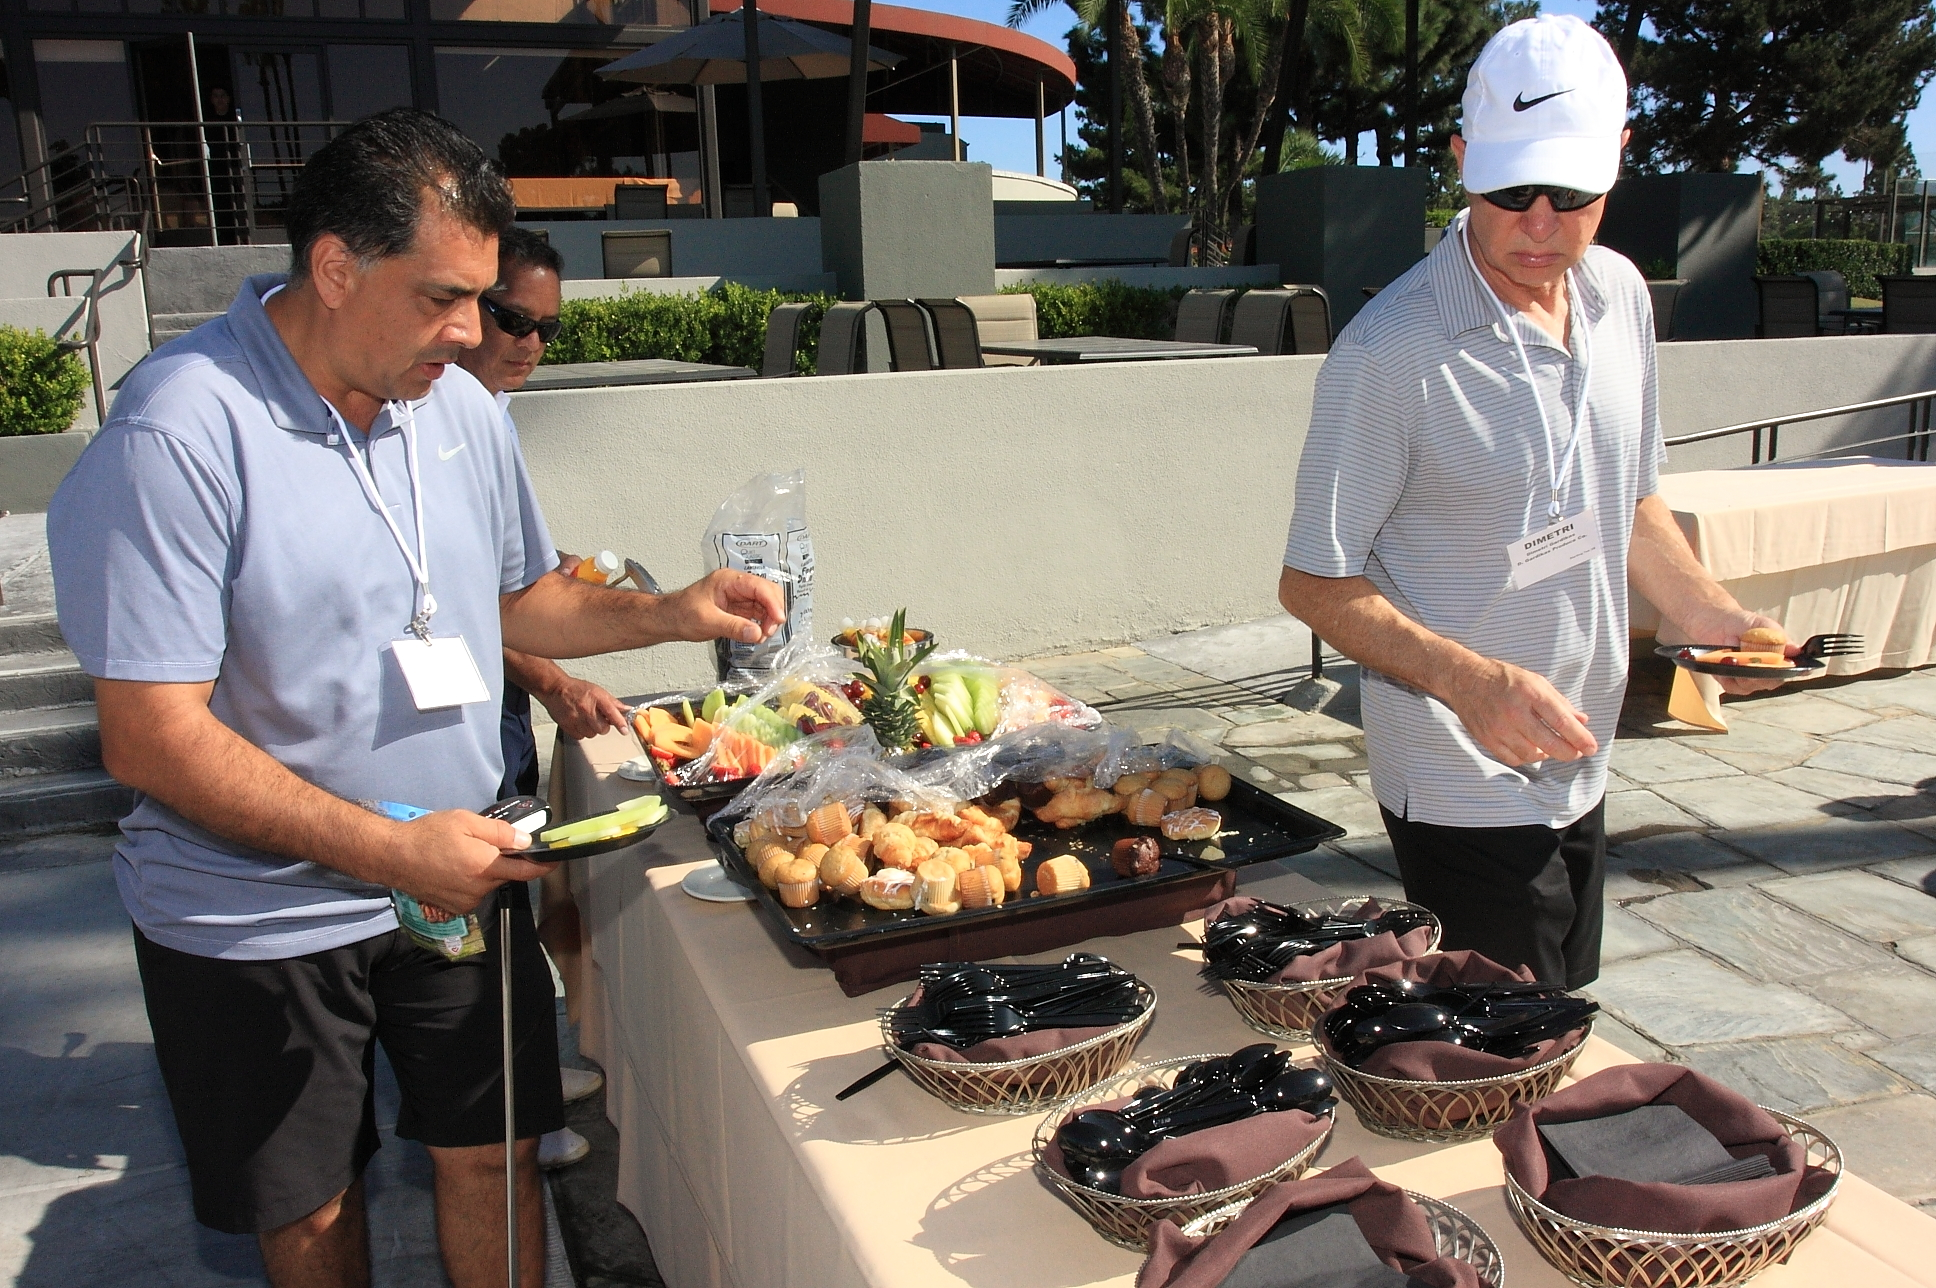 Golfers grabbing breakfast before heading out on the course.